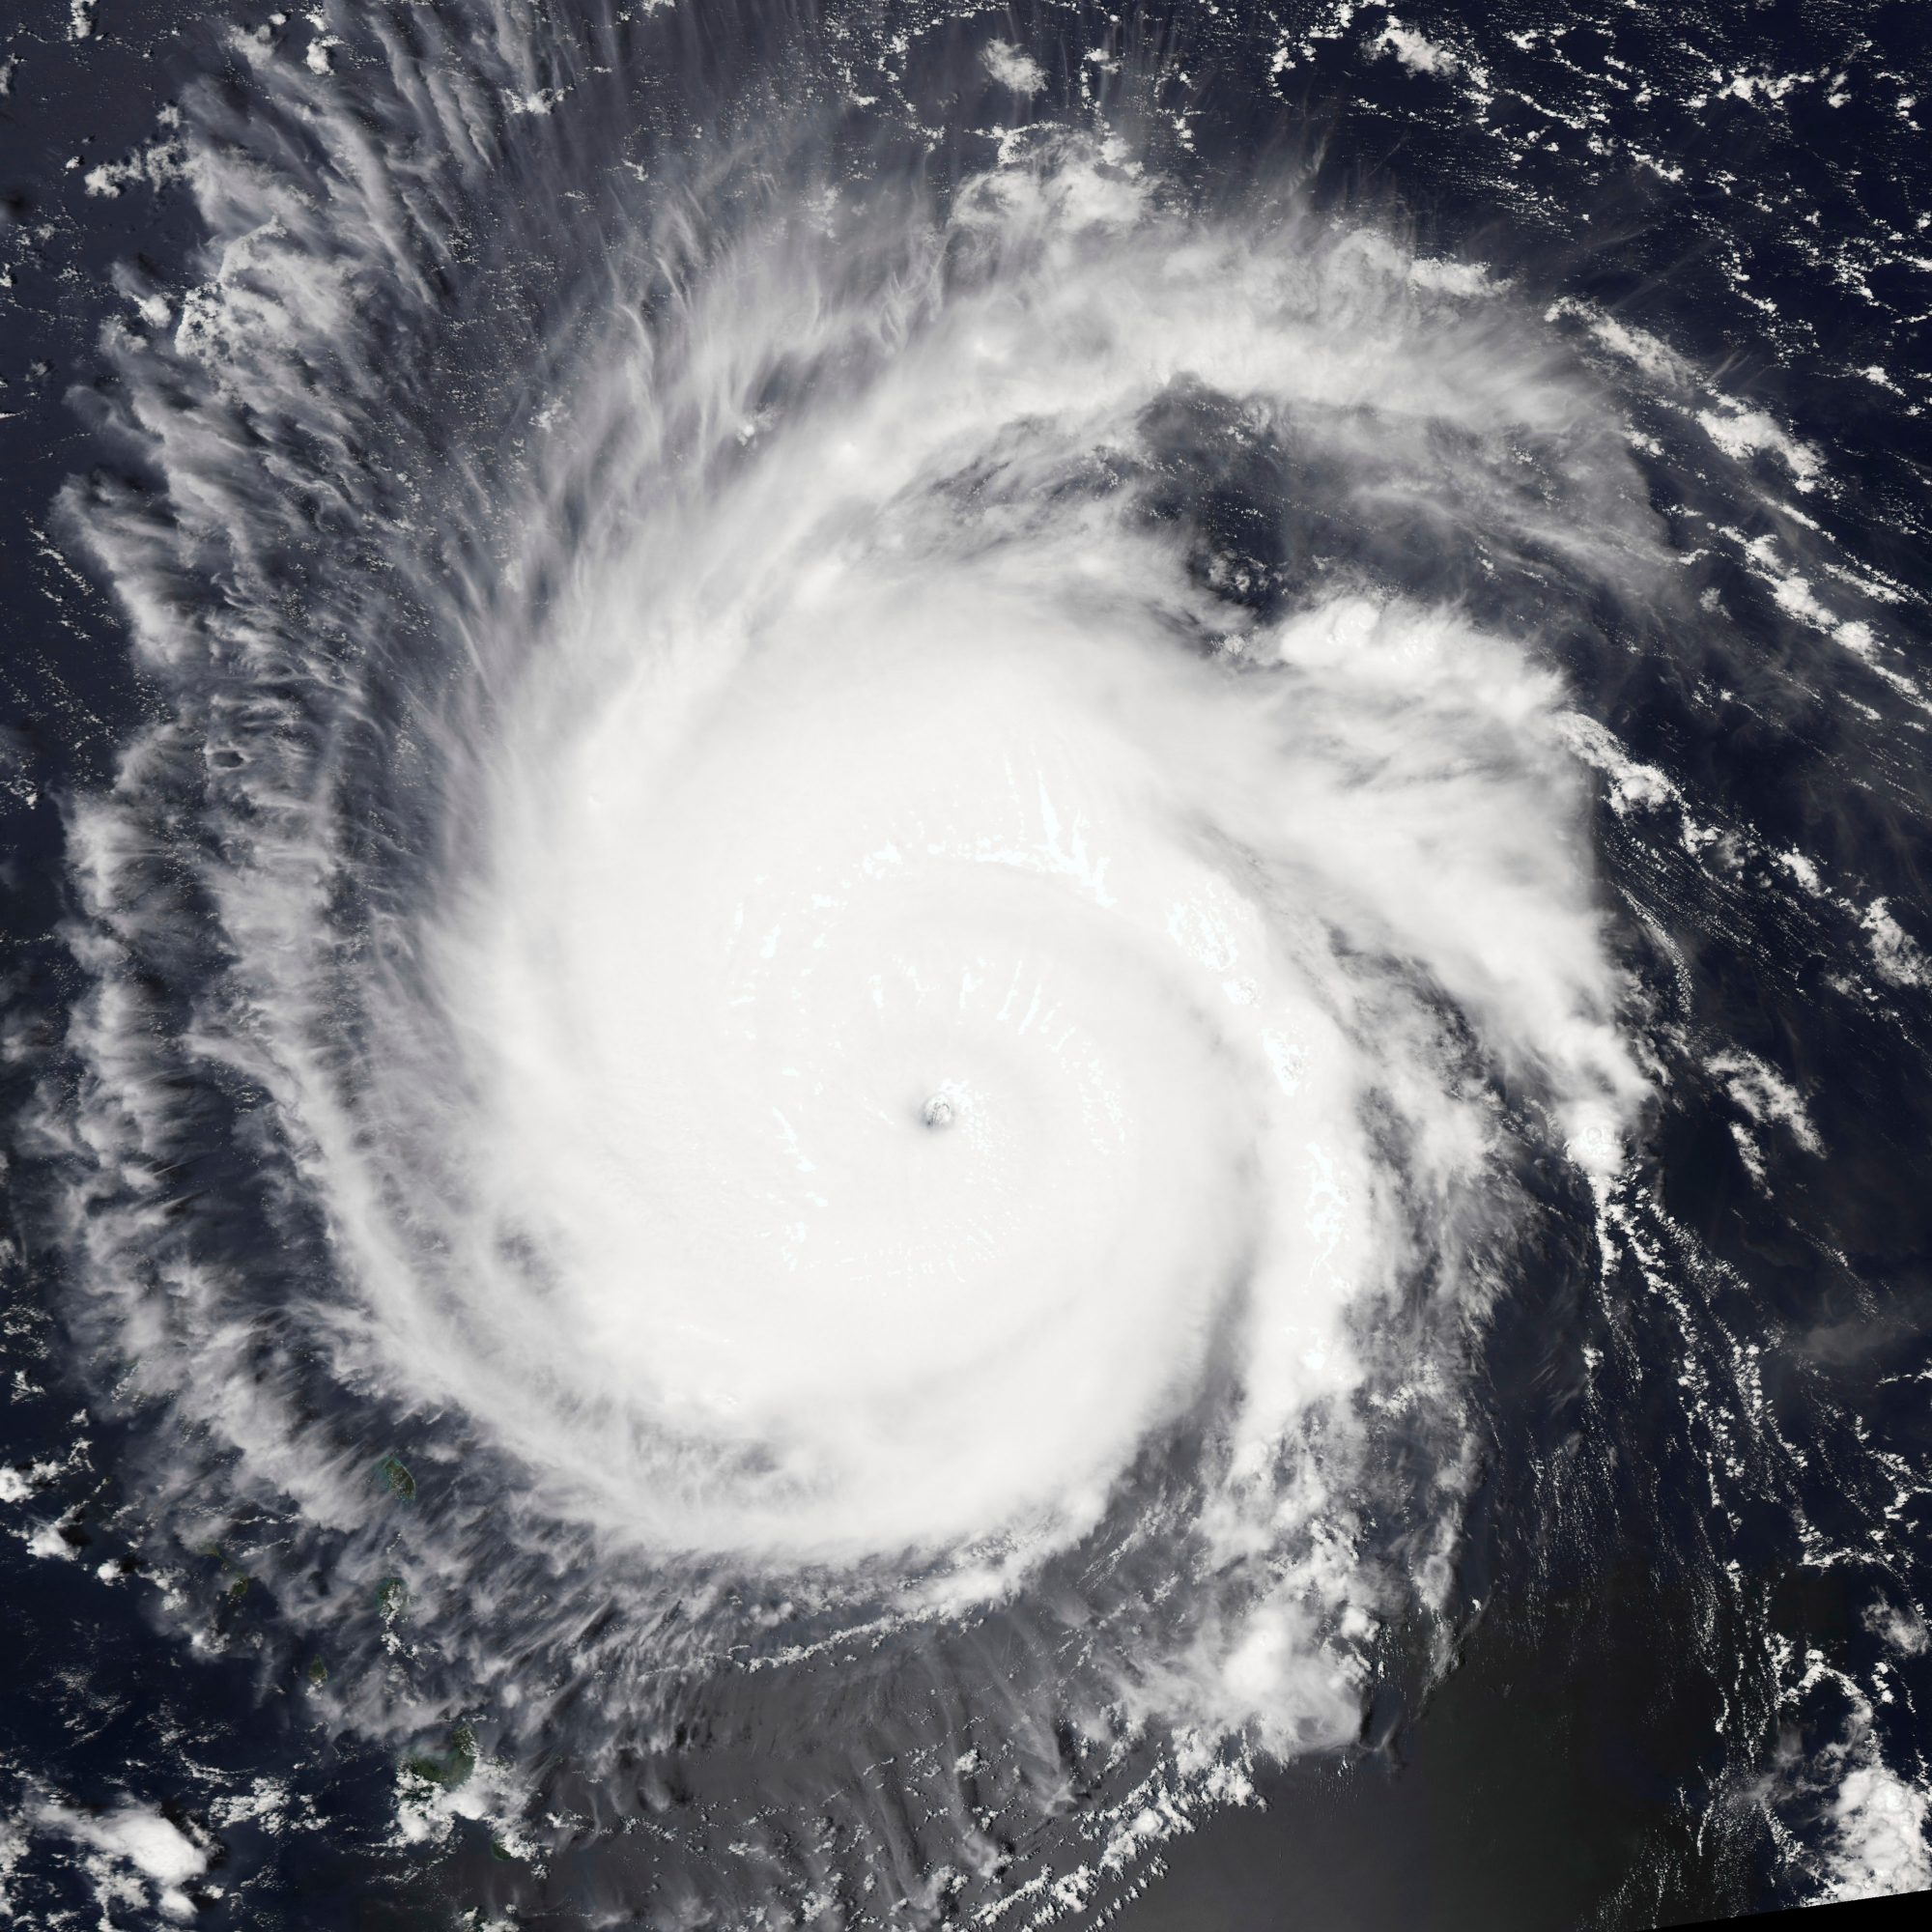 Hurricane Frances, a Category 2 hurricane when it landed in east Florida in early September 2004, hit just a week after Charley and just a few days before Ivan. Frances was the fourth hurricane of the 2004 season. Cost: $9.5 billion